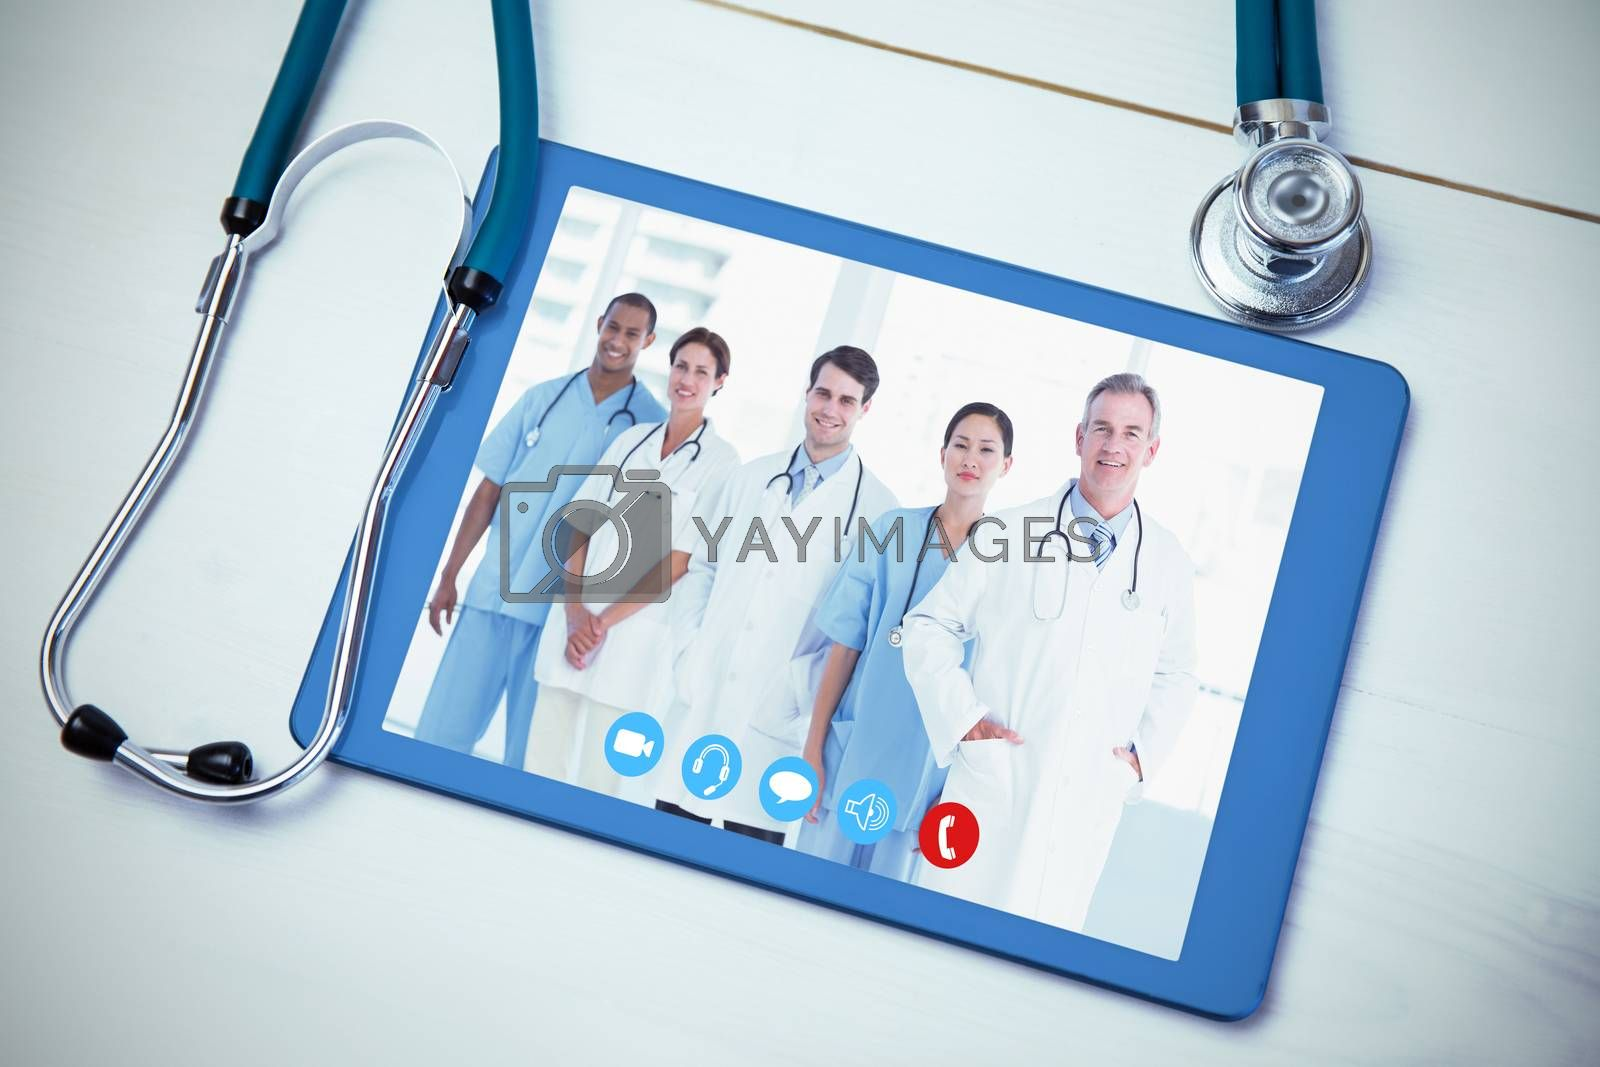 View of video chat app against tablet and stethoscope on desk